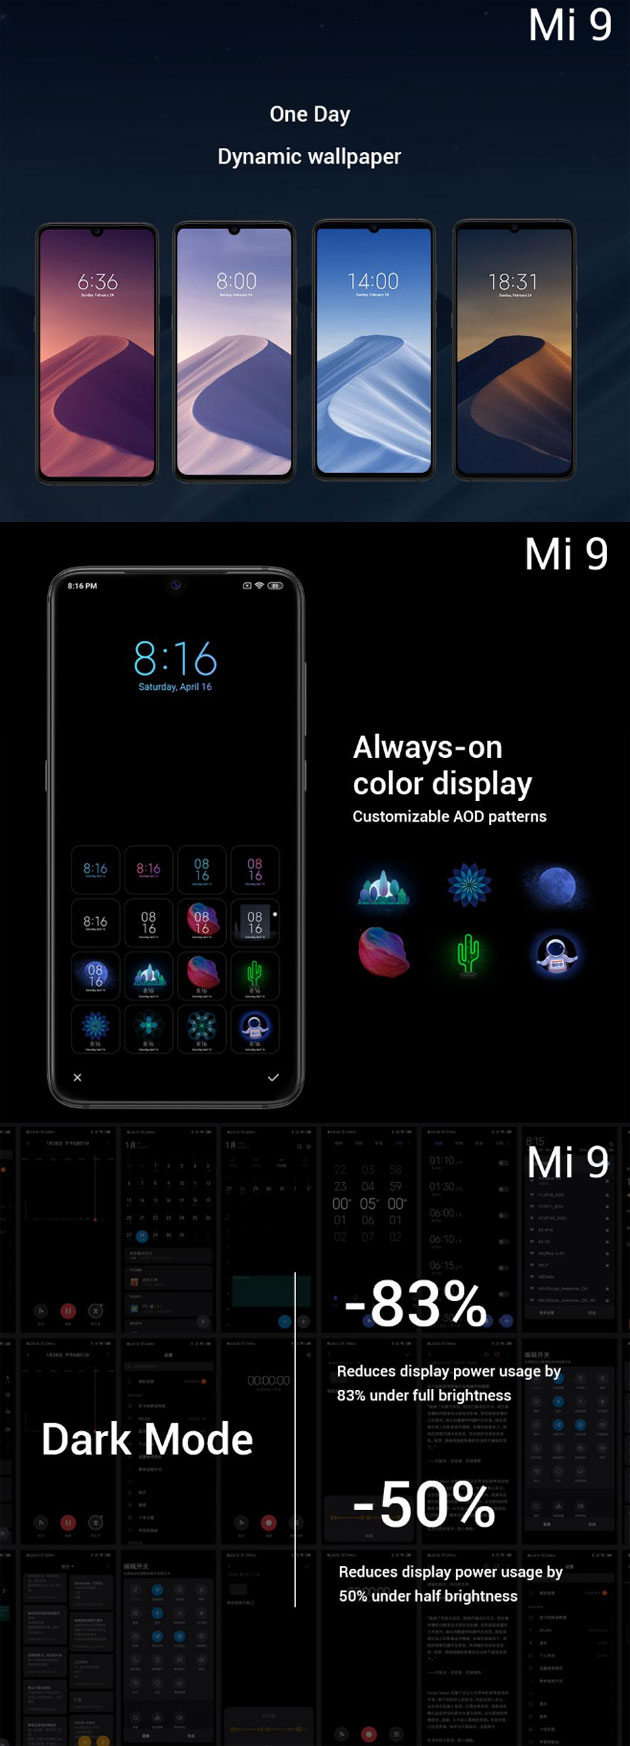 Xiaomi Mi 9 - Dynamic Wallpaper, Dark mode, Always-On Display a colori